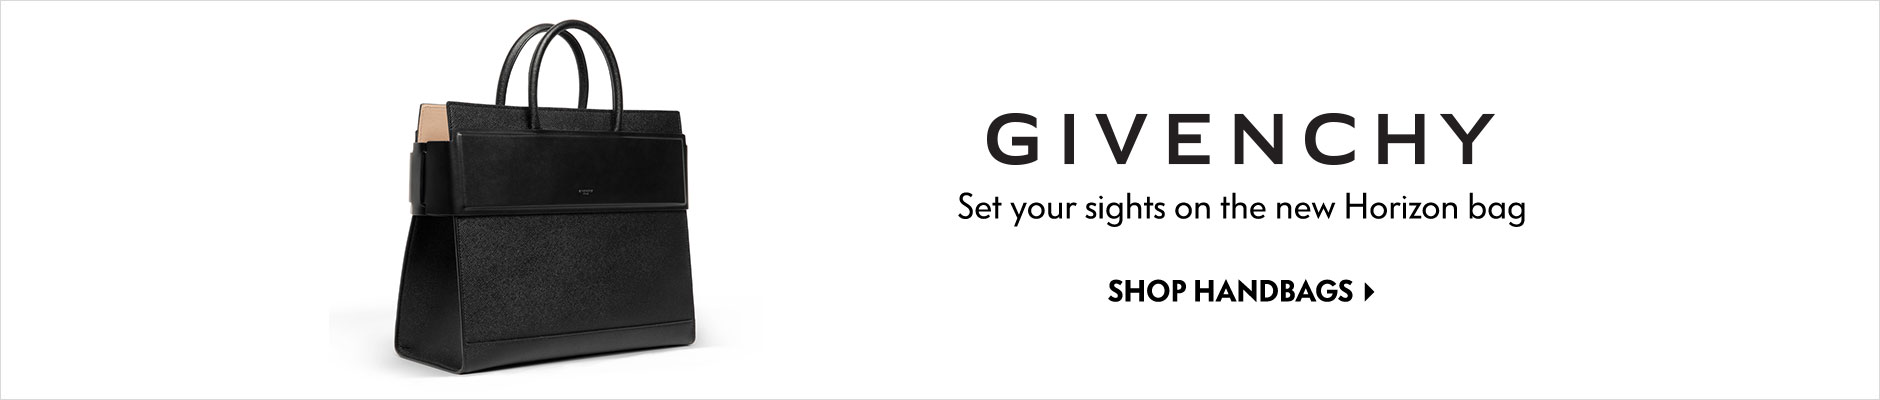 Givenchy - Set your sights on the new horizon bag